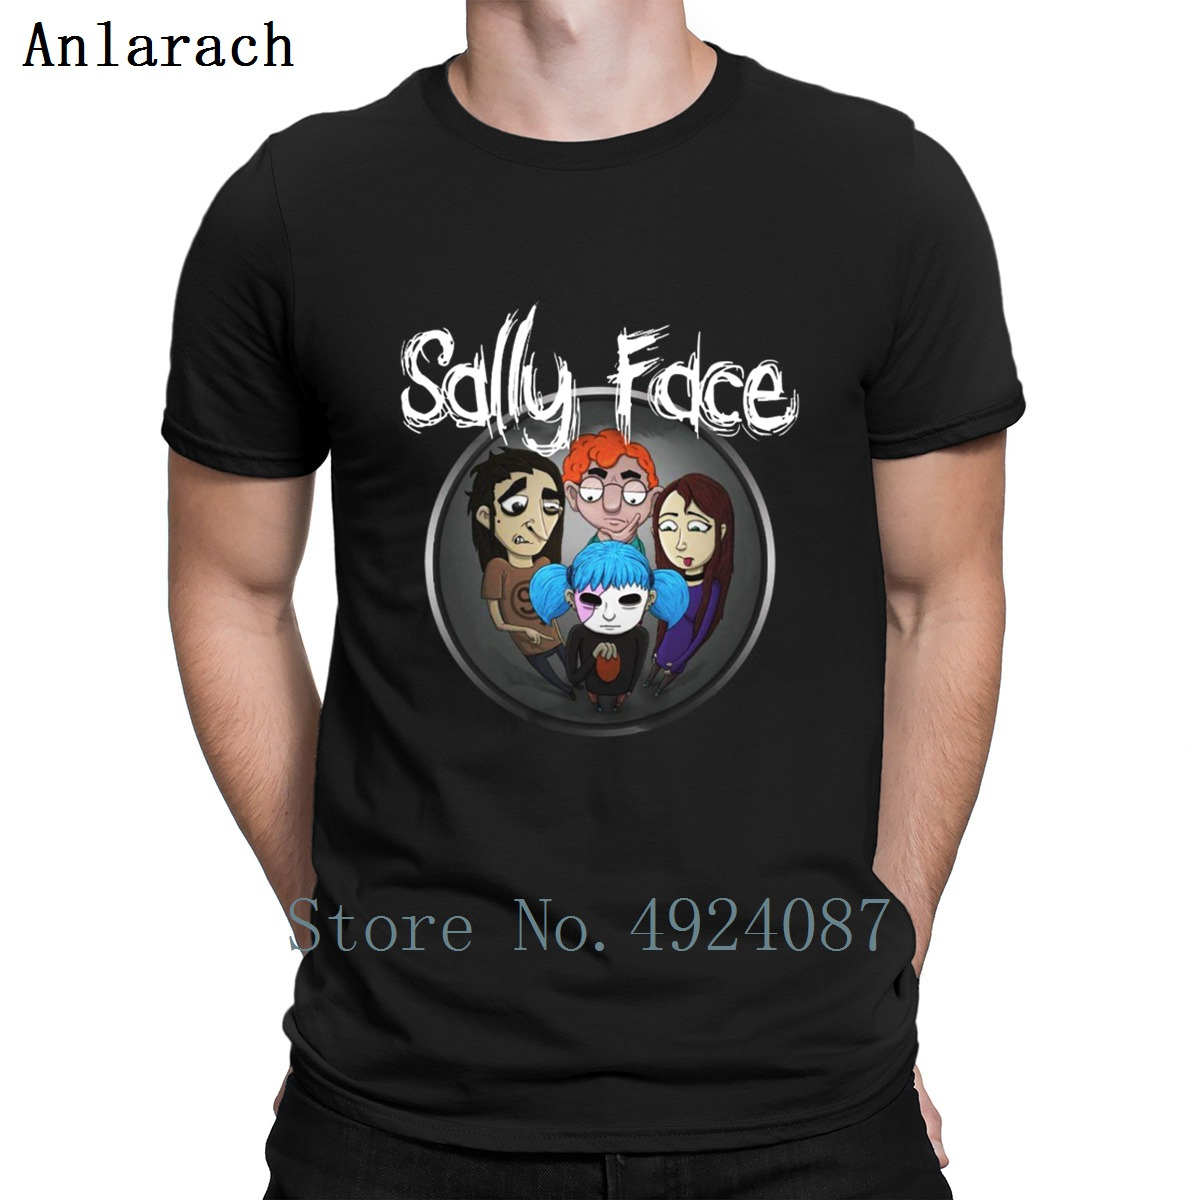 Sally Face Merch T Shirt Summer 2019 Fitted Fitness O Neck Tee Shirt Personalized Classic Formal Top Quality image